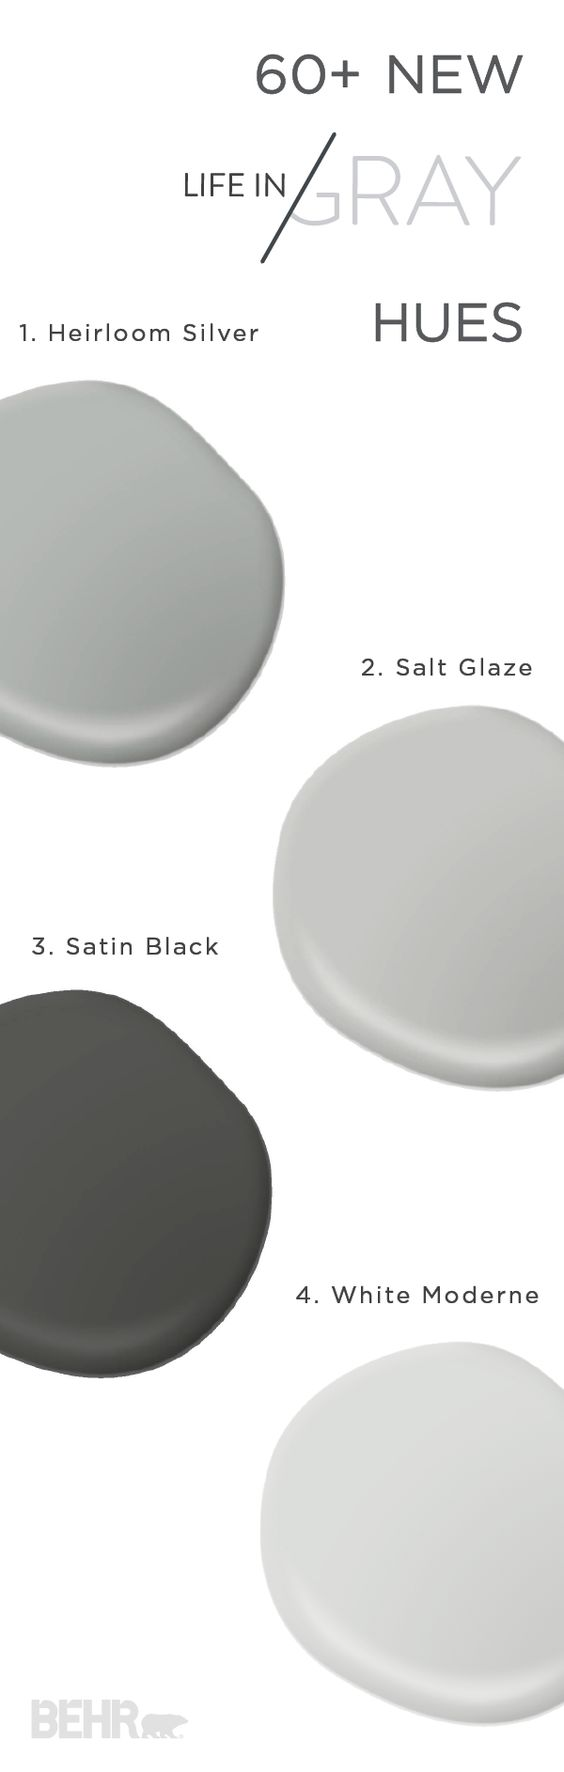 New Life Paint Combinations And Gray On Pinterest - behr home decorators collection cream new